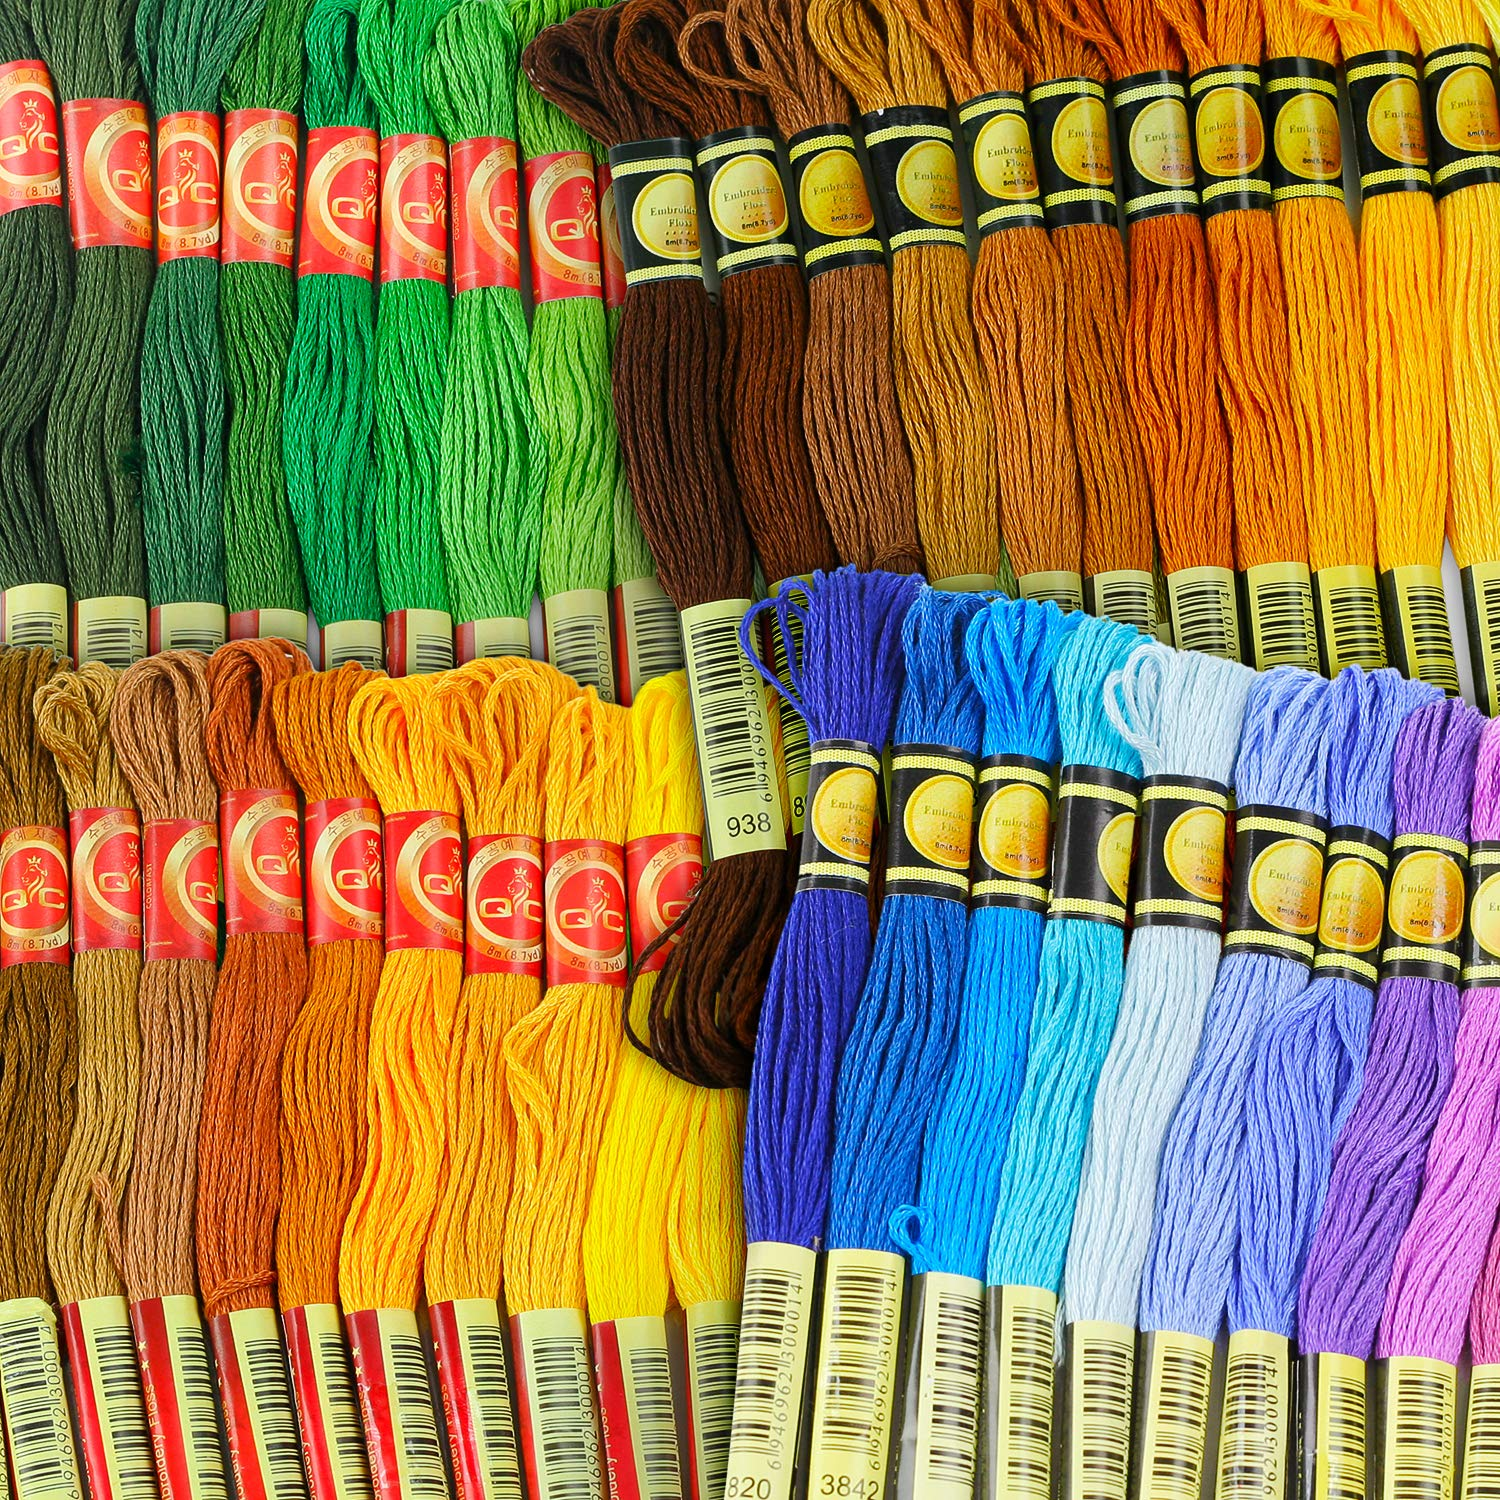 Embroidery Thread - Full 477 Skeins Rainbow Color Embroidery Floss Set - Excellent Cross Stitch Threads Friendship Bracelets Kit by ThreadNanny